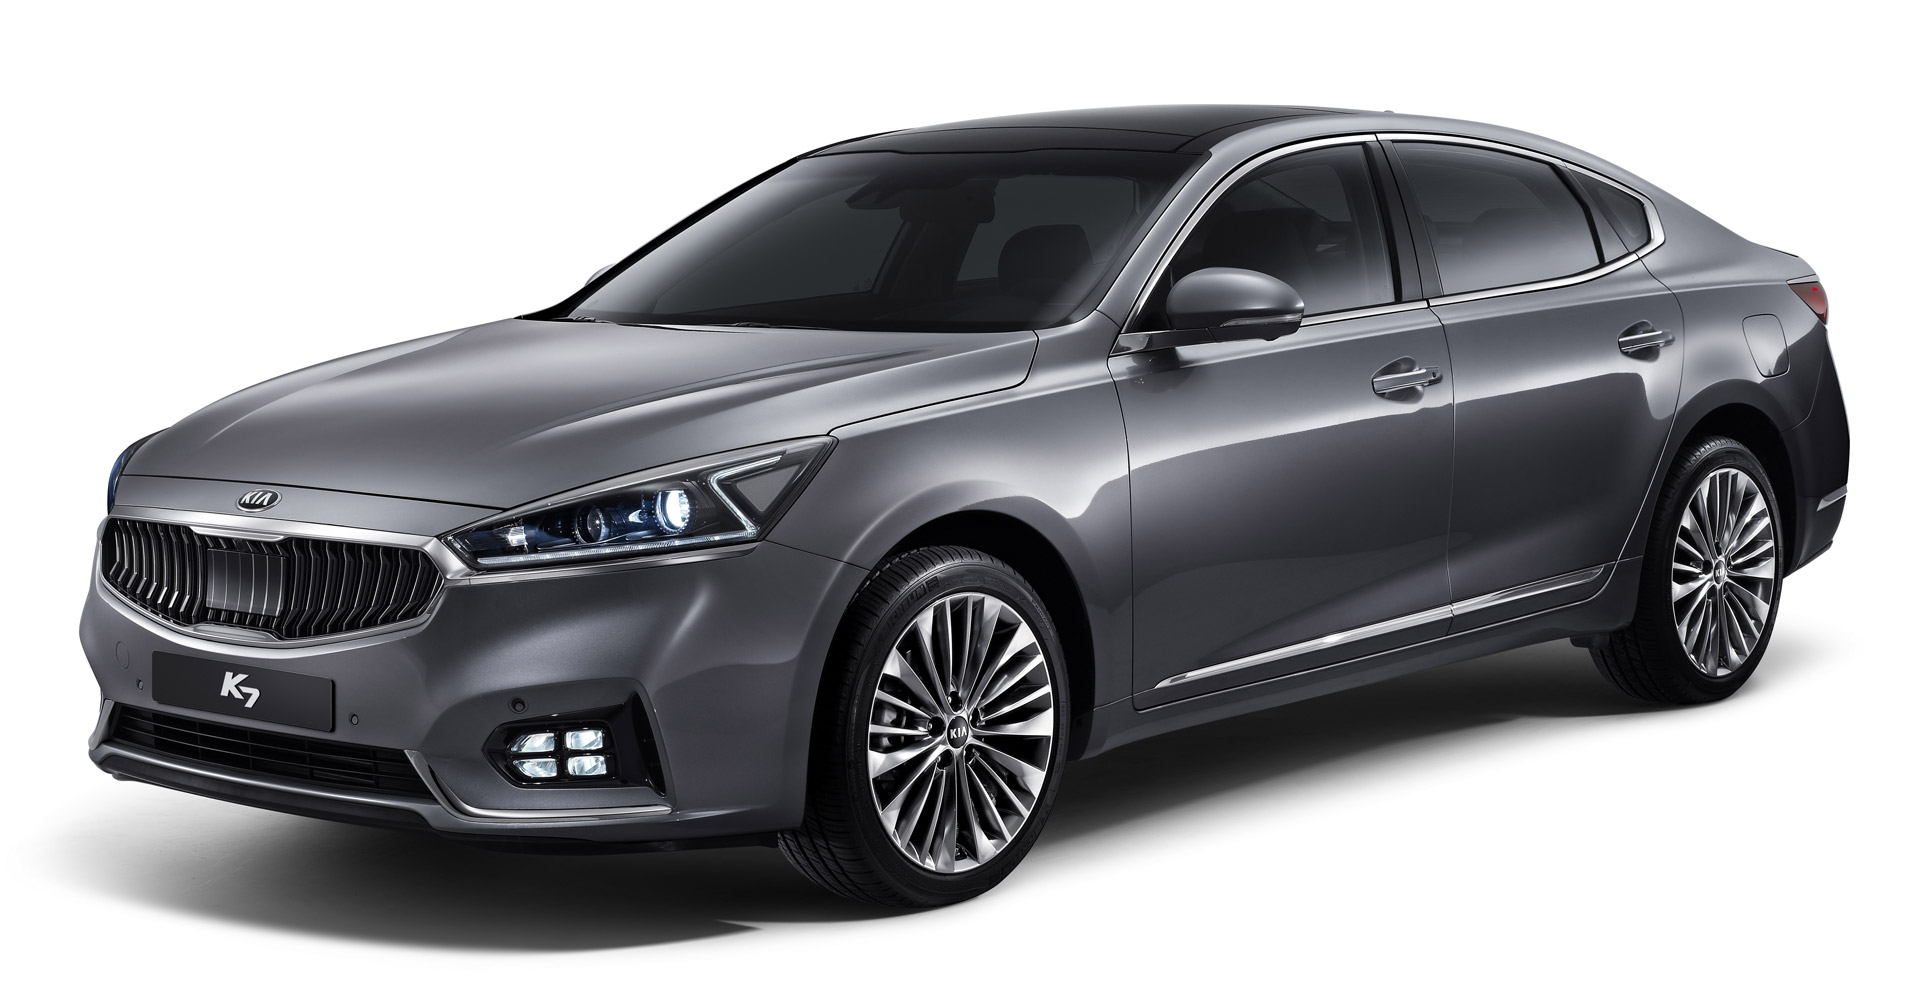 2017 Kia Cadenza Gets Sporty New Look